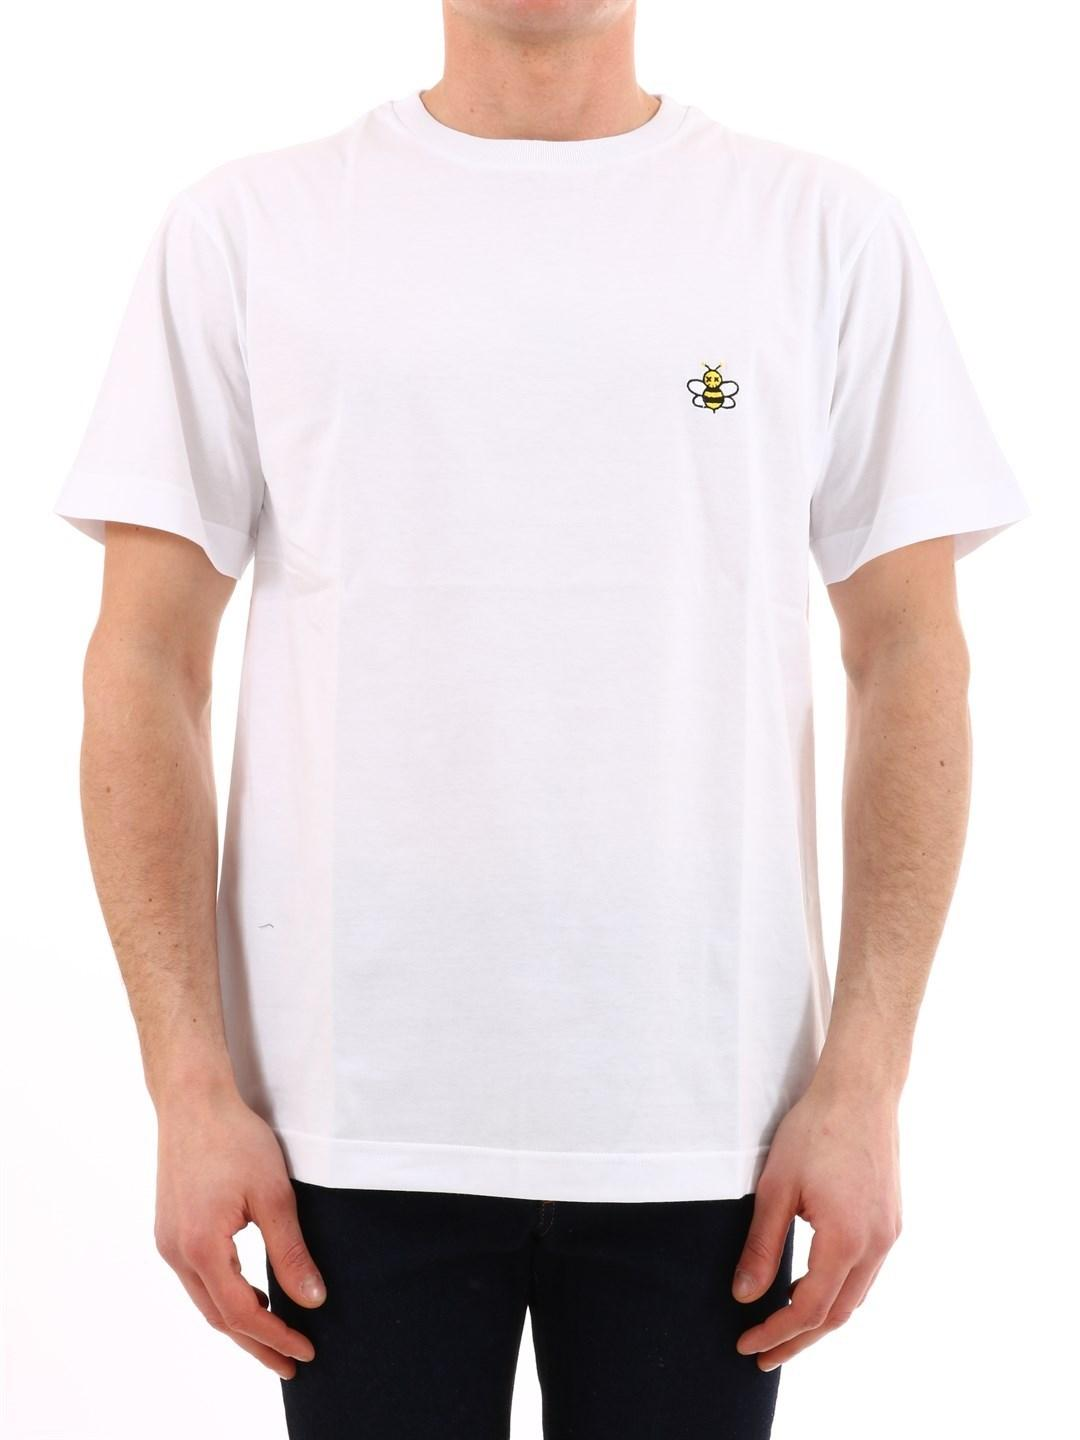 ffb96019 Lyst - Dior Homme T-shirt White in White for Men